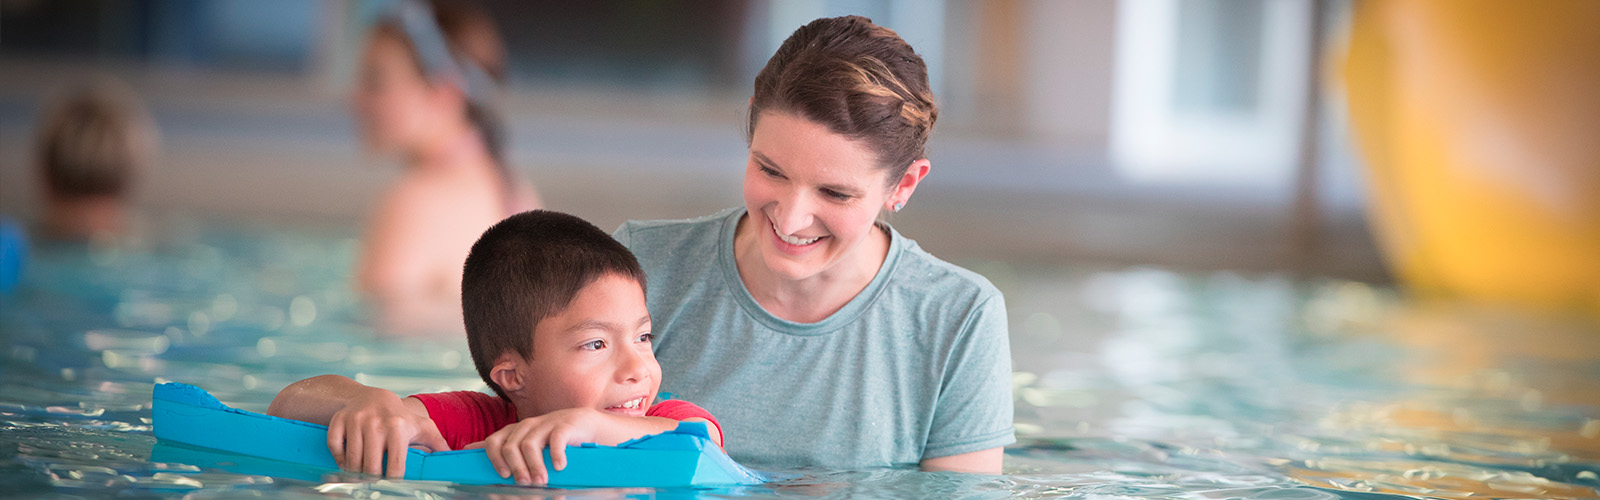 Student working with child in pool